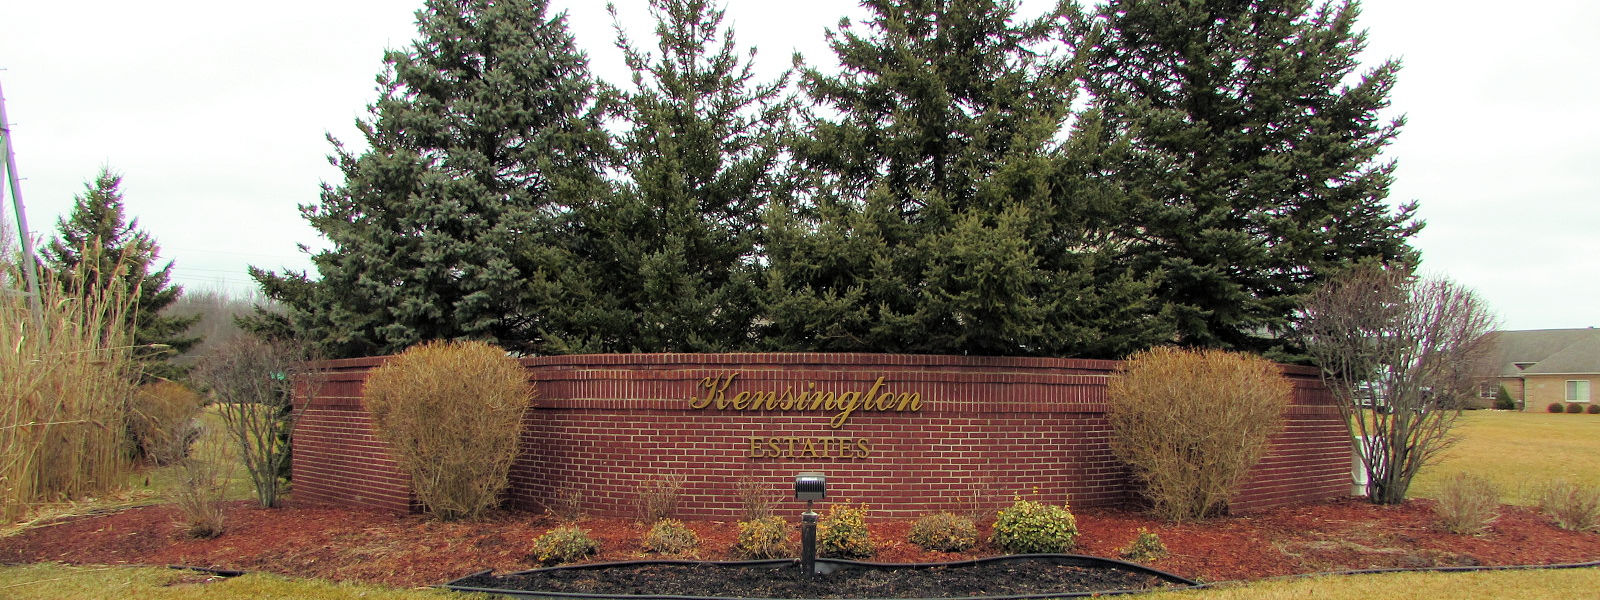 Kensington Estates Subdivision Brownstown Mi sign